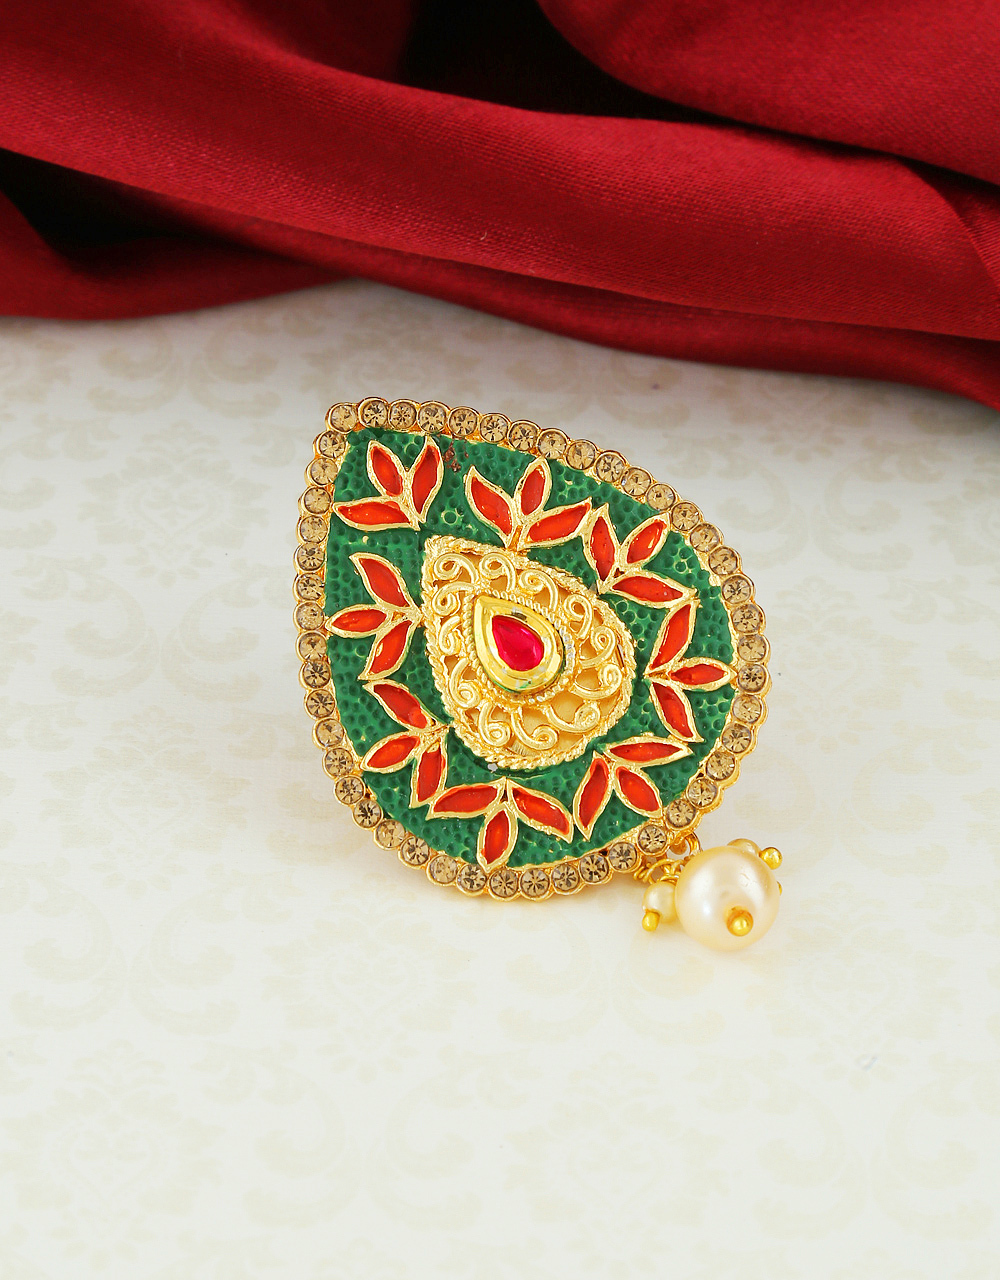 Green Colour Gold Finish Styled With Mina Work Saree Pin